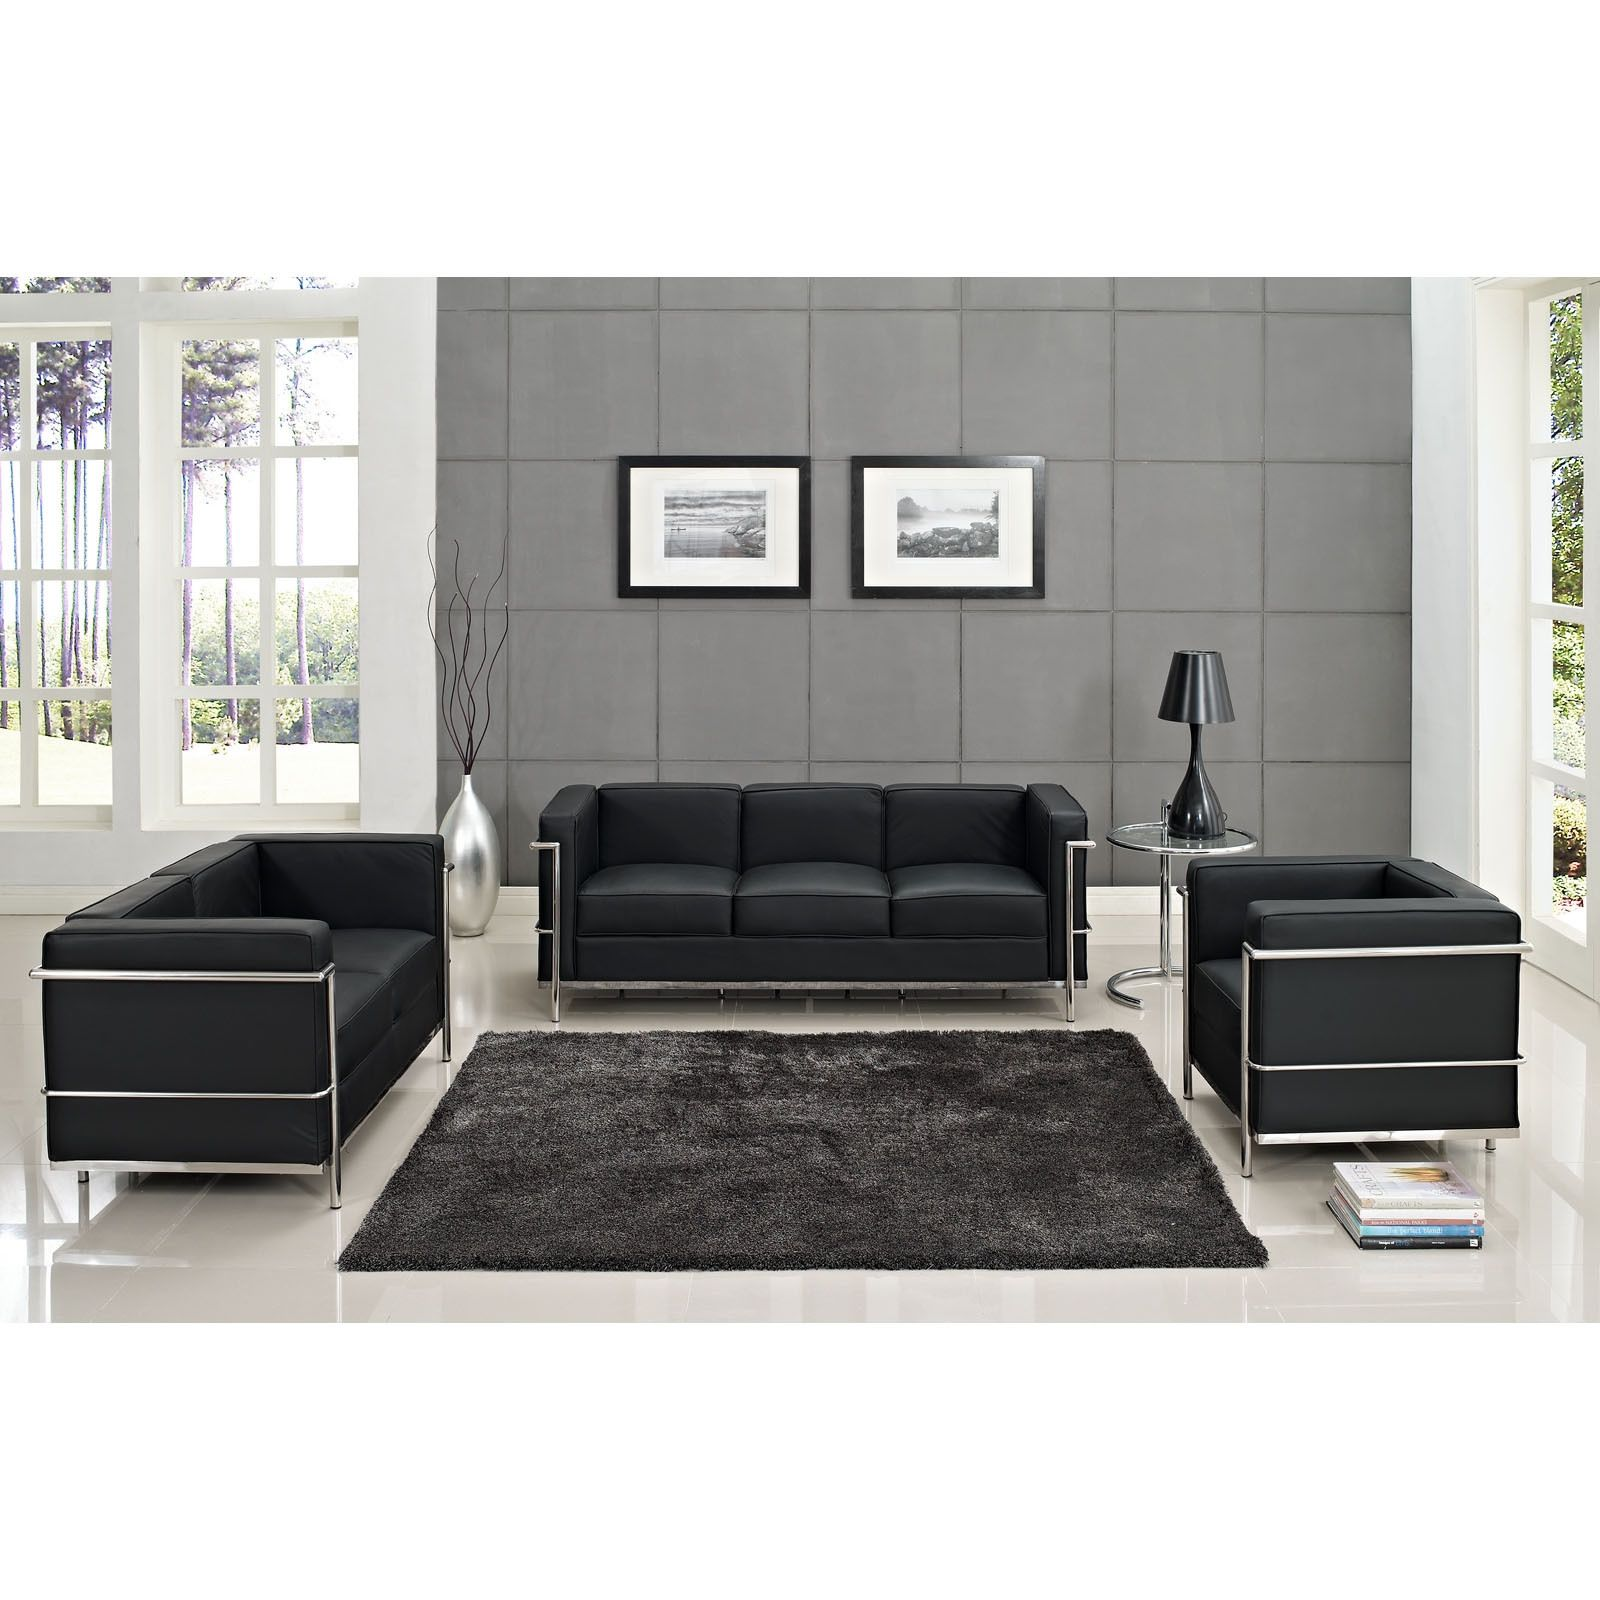 Online Shopping Bedding Furniture Electronics Jewelry Clothing More Leather Living Room Set Sofa Set Leather Sofa Set